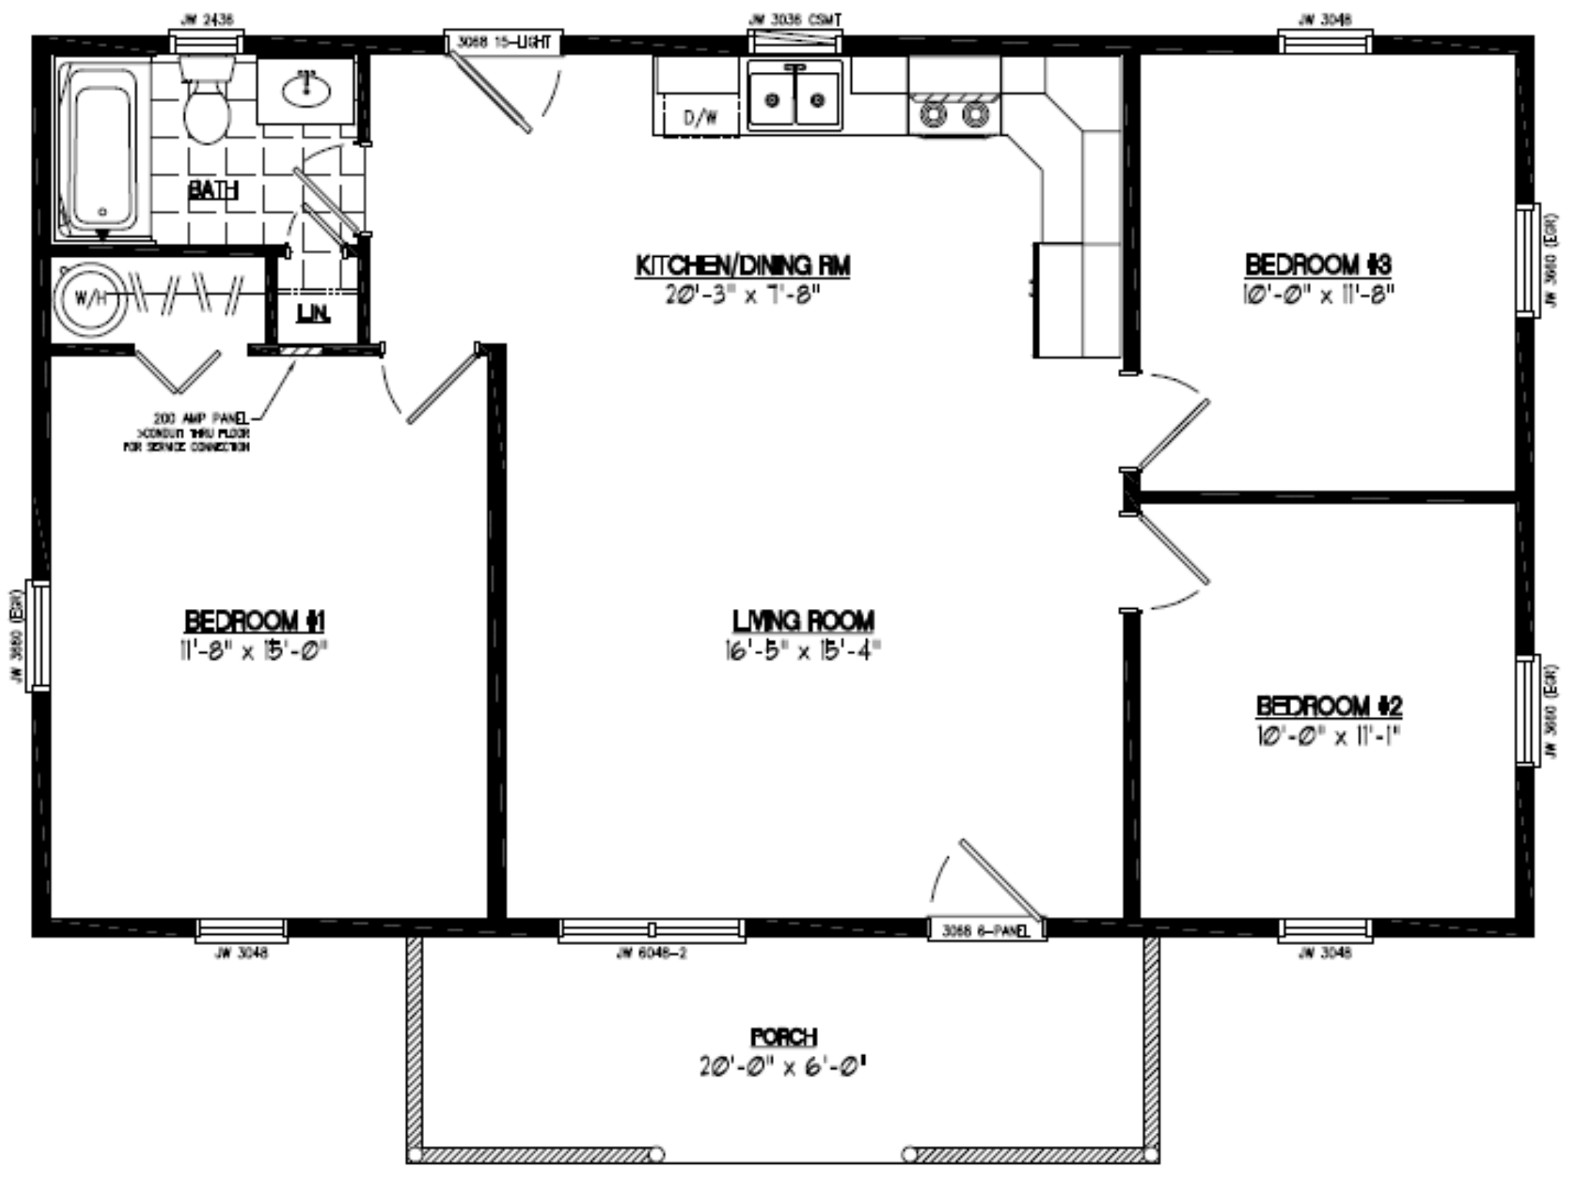 Certified Homes | Pioneer Certified Home Floor Plans on 28x44 house plans, 20x25 house plans, 30 x 40 2 story pole barn house plans, 28x38 house plans, 14x18 house plans, 24x30 house plans, 30x24 house plans, 28x34 house plans, 16x36 house plans, 2 bedroom ranch floor plans, 8x12 house plans, 24x46 house plans, 36x24 house plans, 50x70 house plans, cottage house plans, 24x24 house plans, small modular homes floor plans, 24x32 house plans, 2 story saltbox house plans, 12x18 house plans,